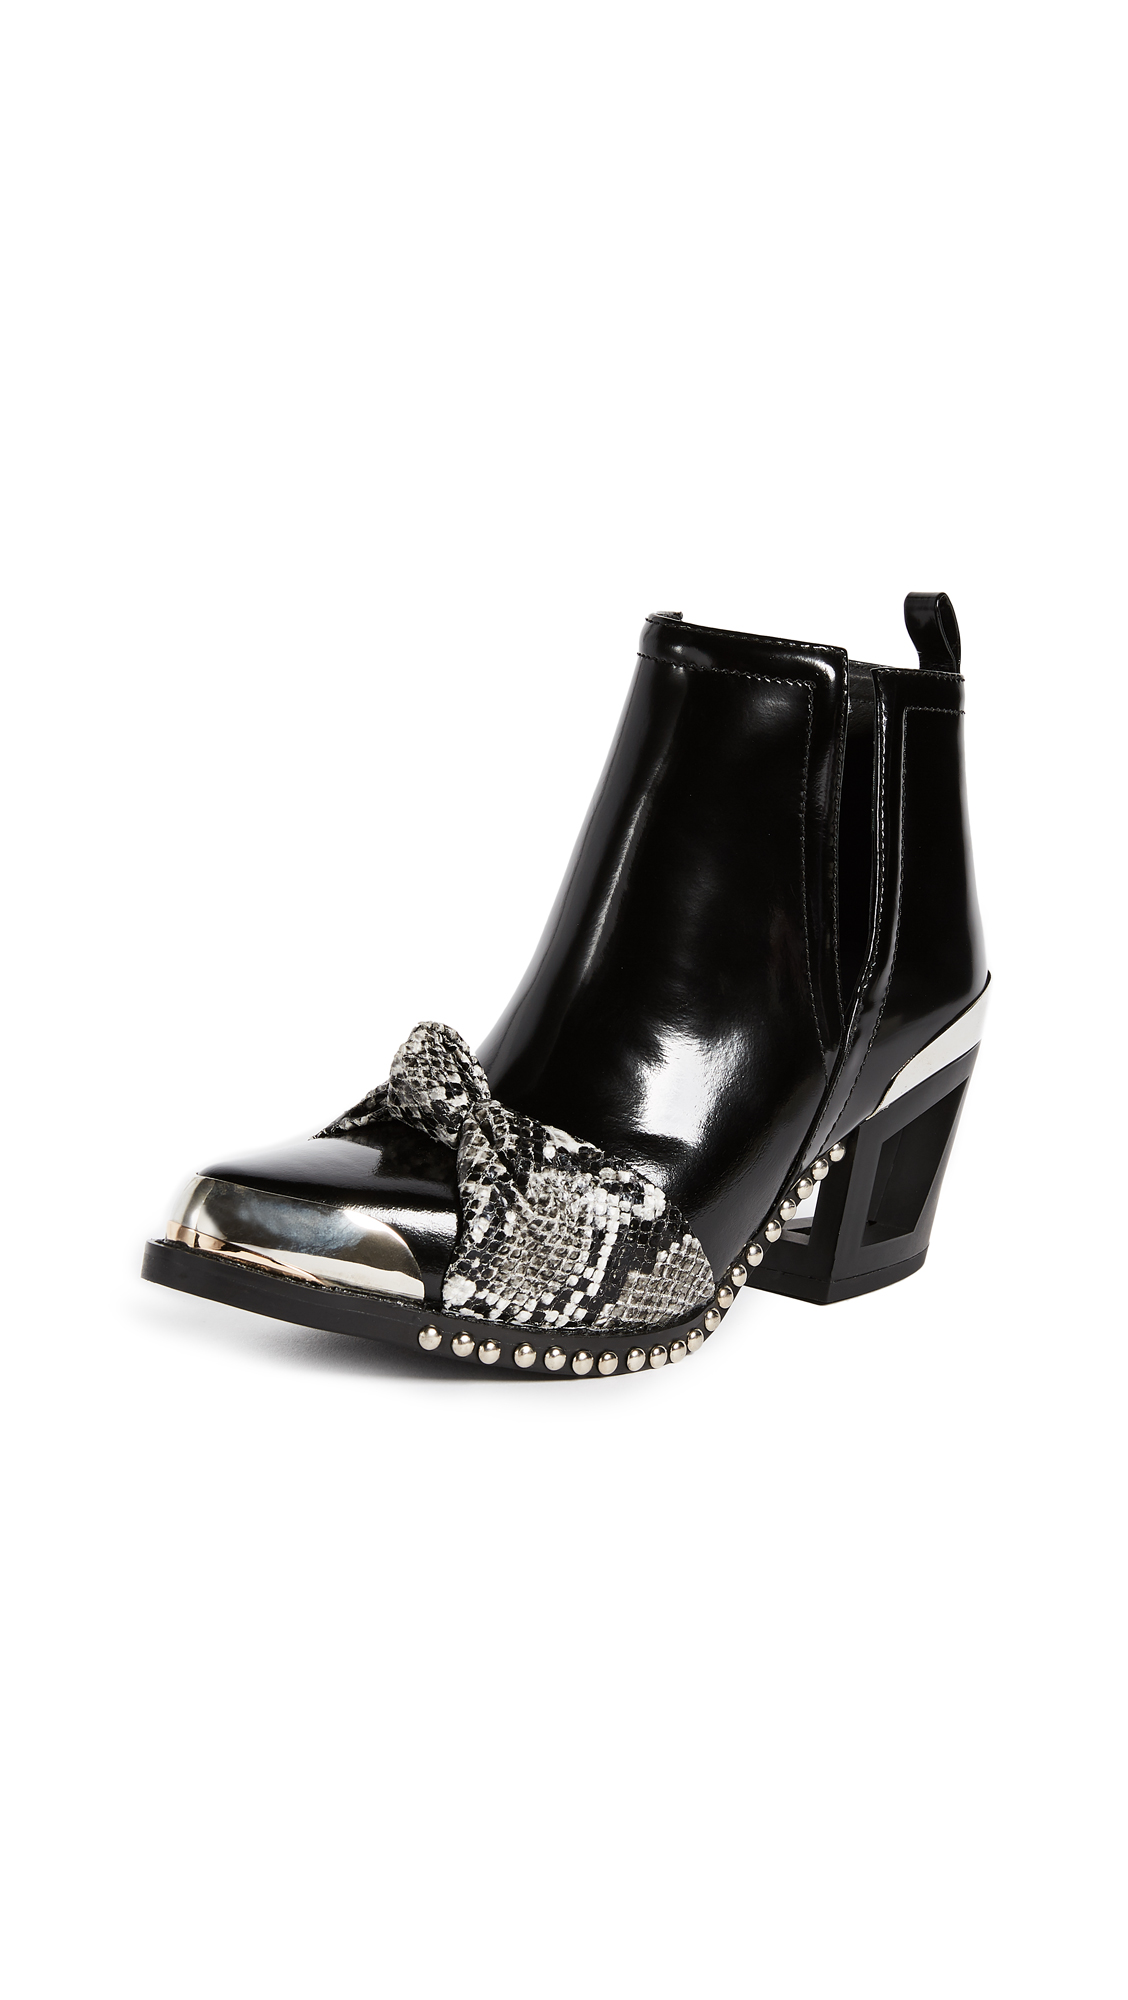 Jeffrey Campbell Optimal Booties - Black